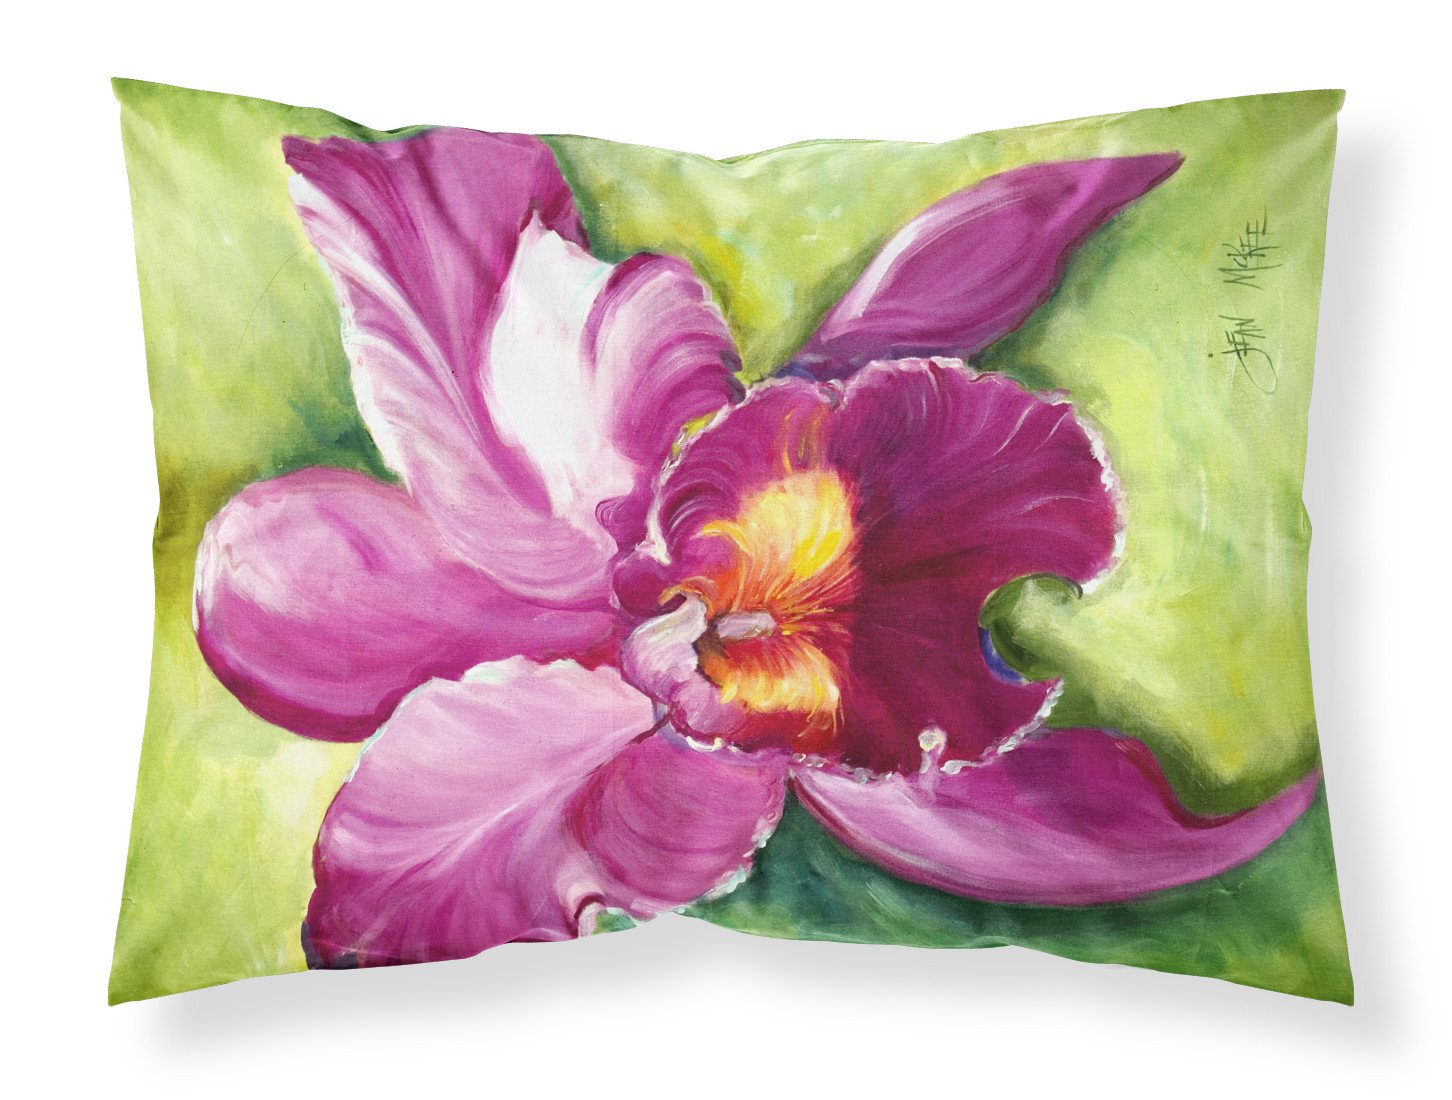 Buy this Orchid Fabric Standard Pillowcase JMK1120PILLOWCASE